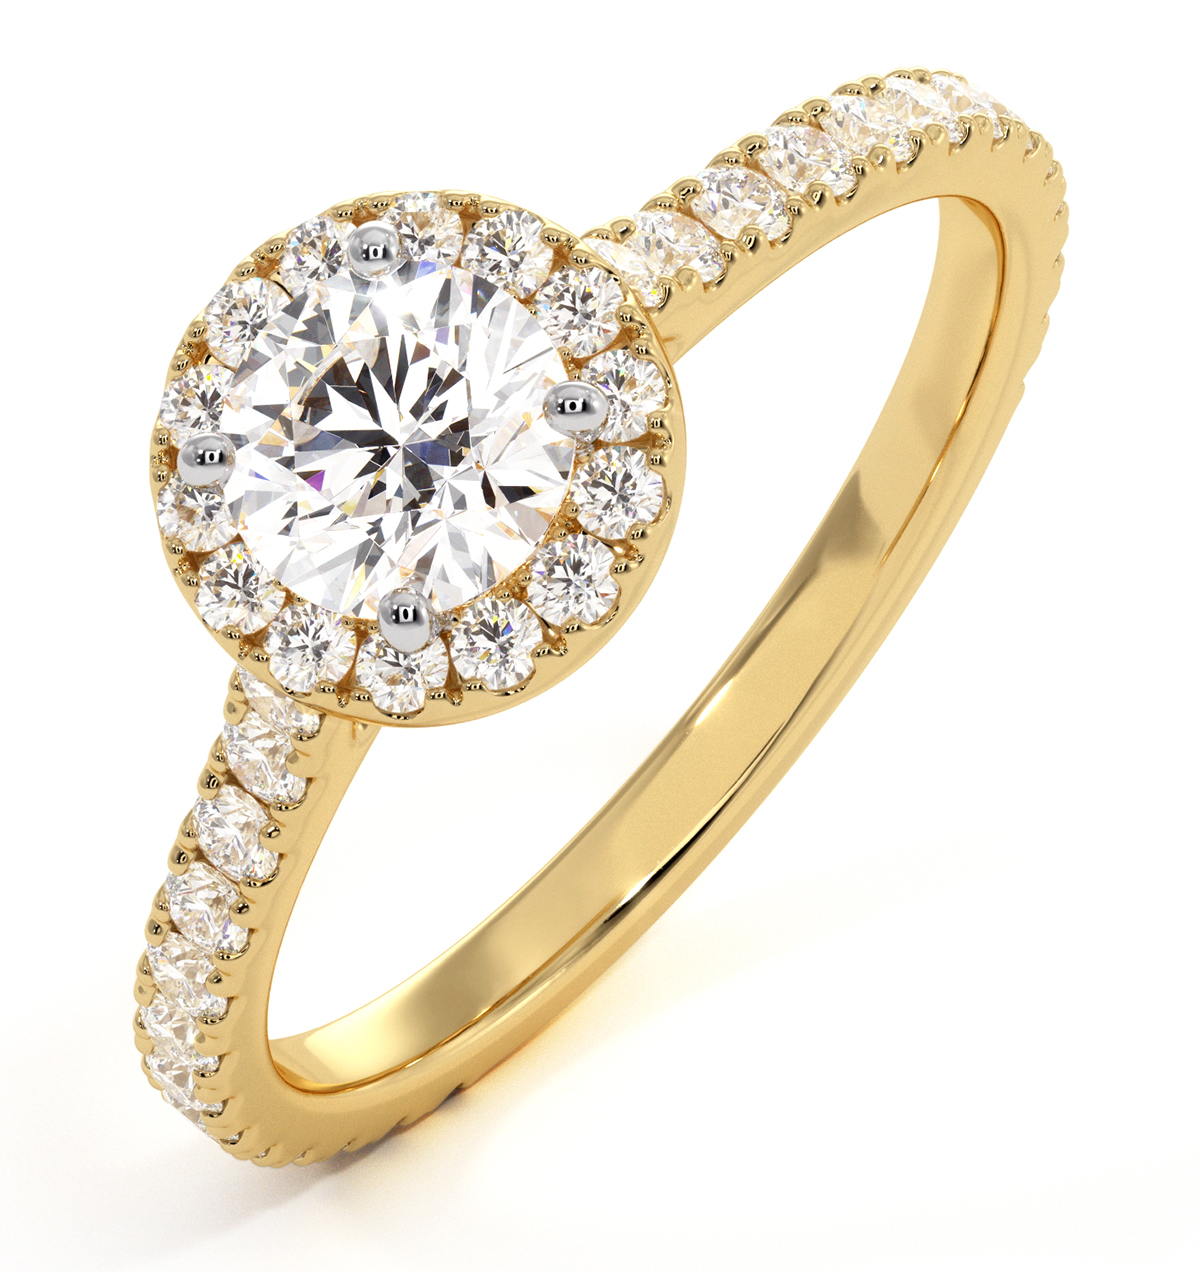 Reina GIA Diamond Halo Engagement Ring in 18K Gold 1.10ct G/VS1 - image 1